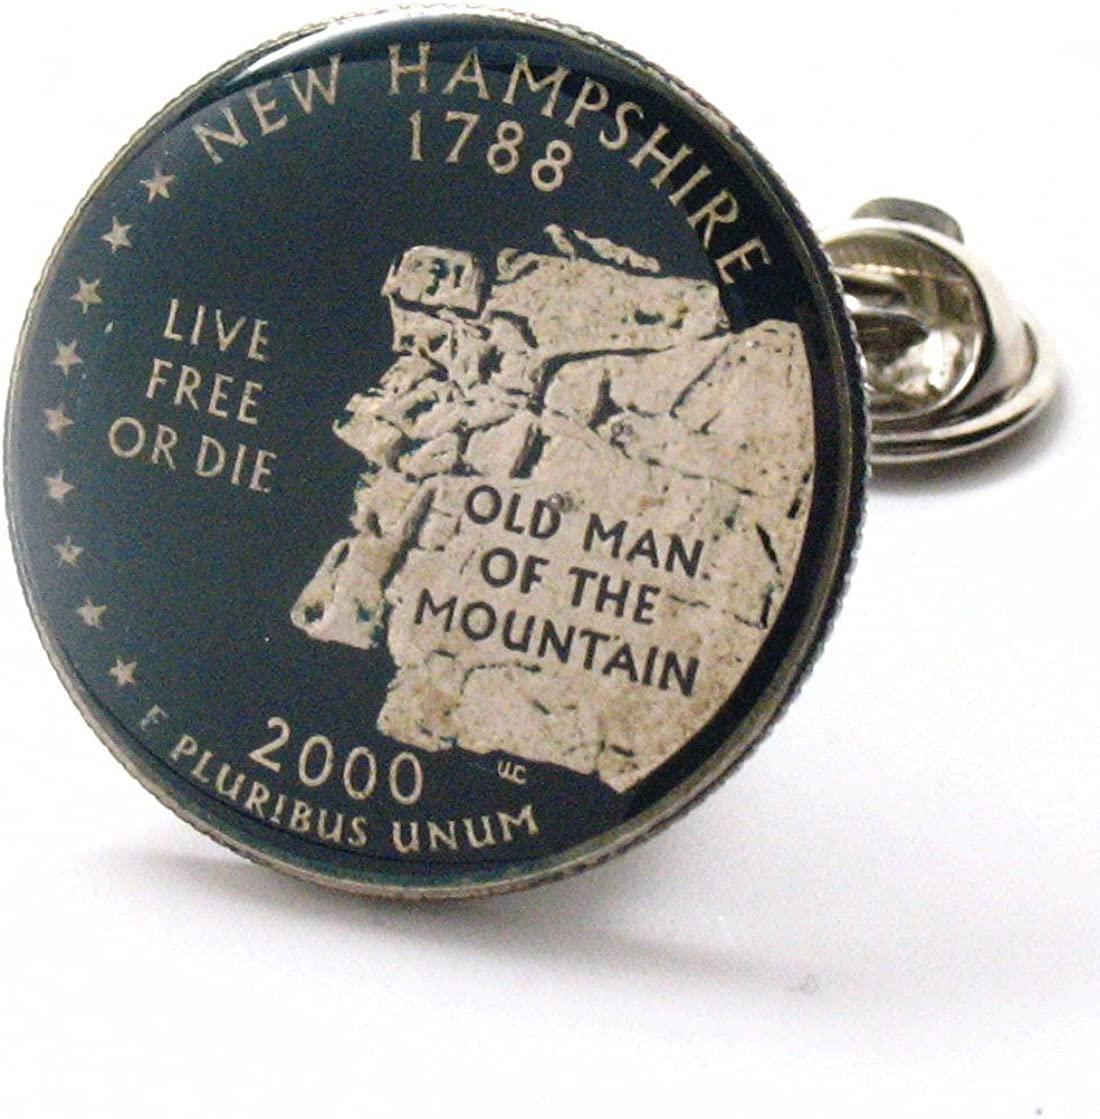 New Hampshire Tie Tack Lapel Pin Suit Flag State Coin Jewelry USA United States America East Cost Manchester